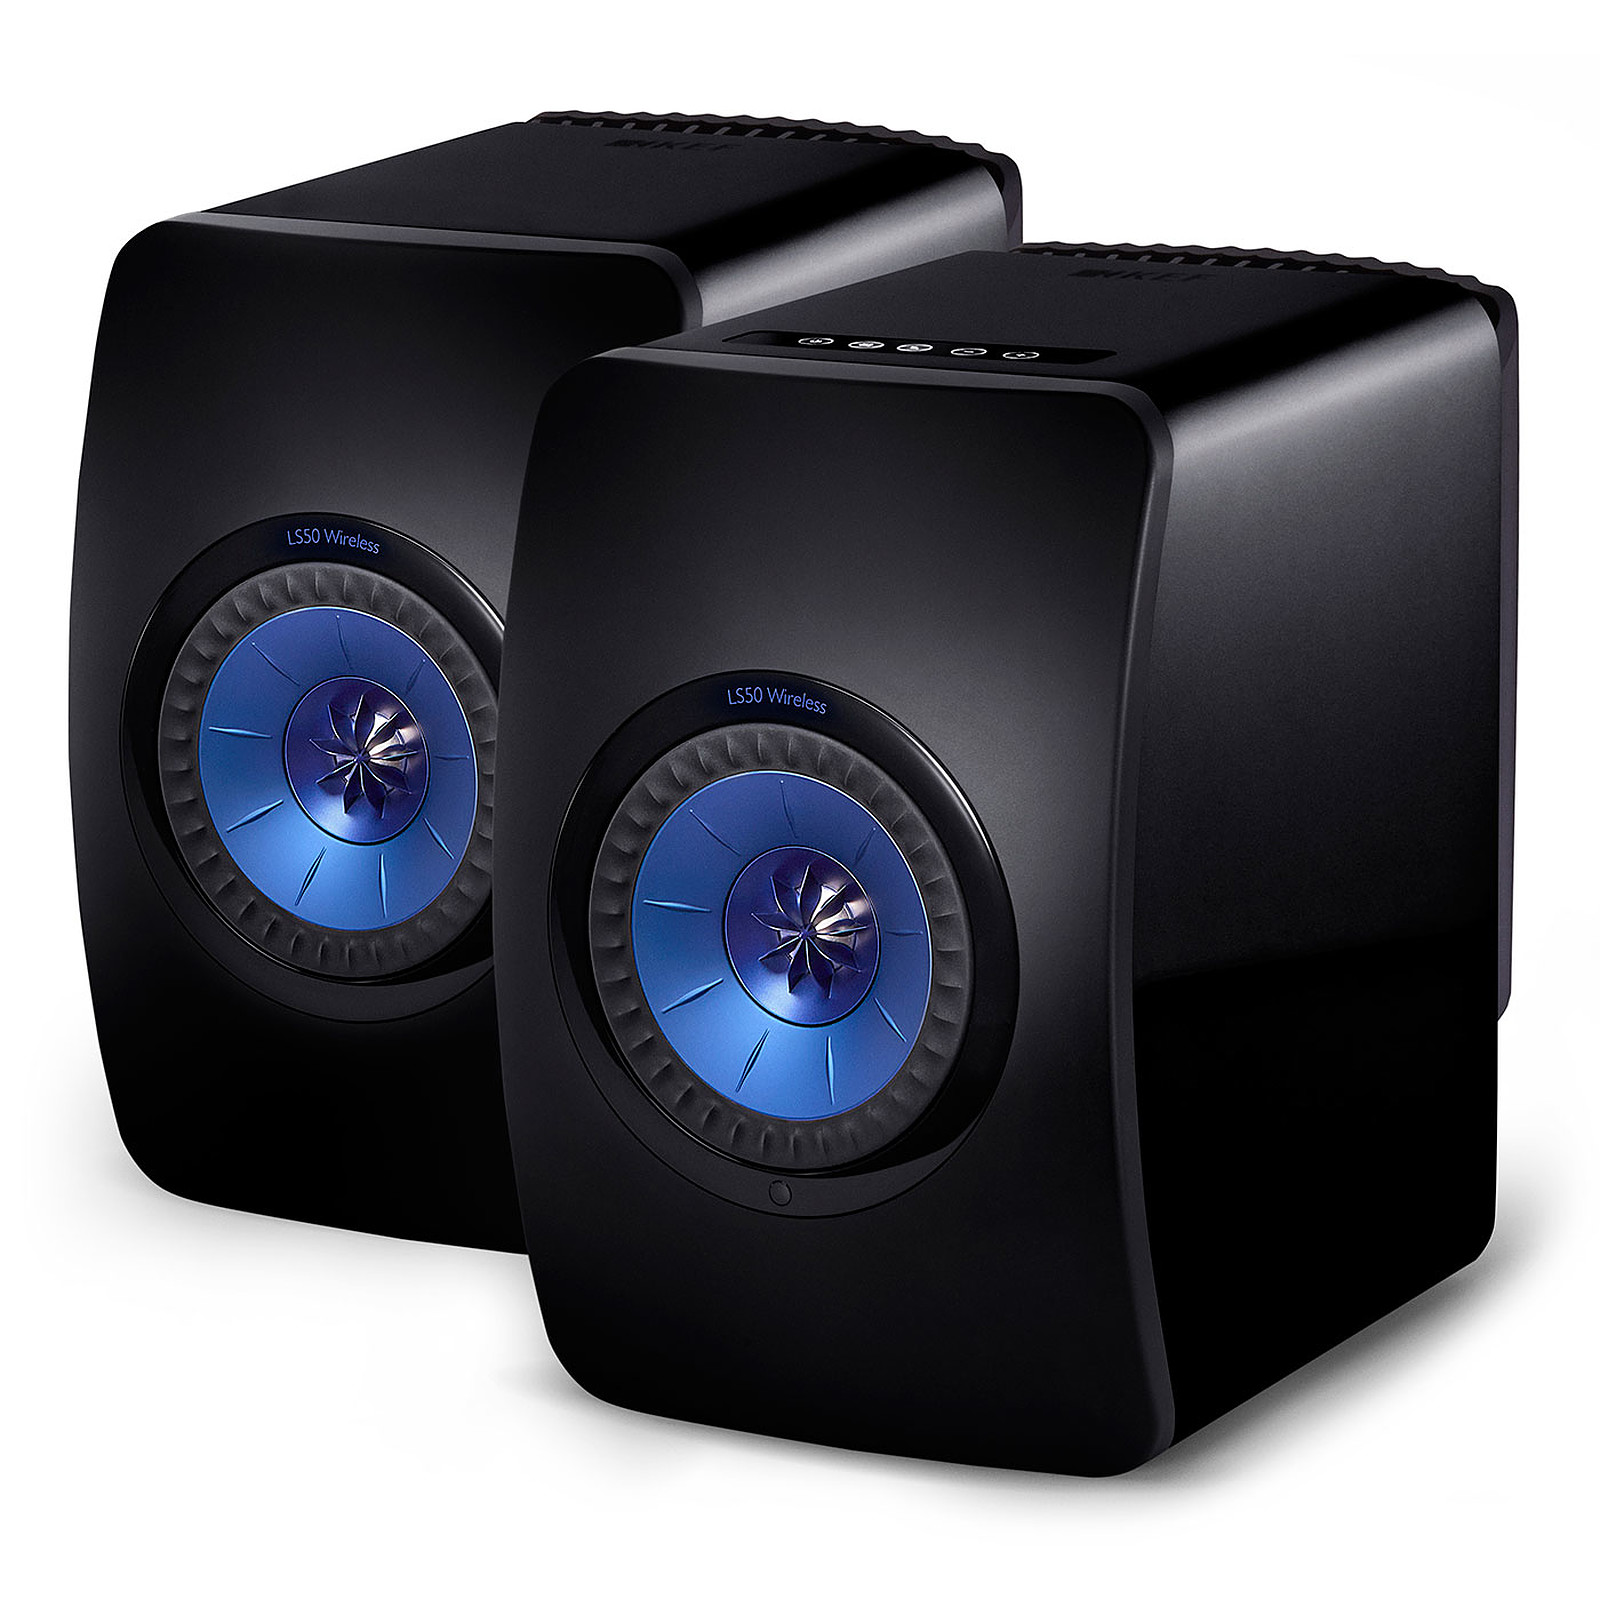 KEF LS50 Wireless Noir brillant / Bleu